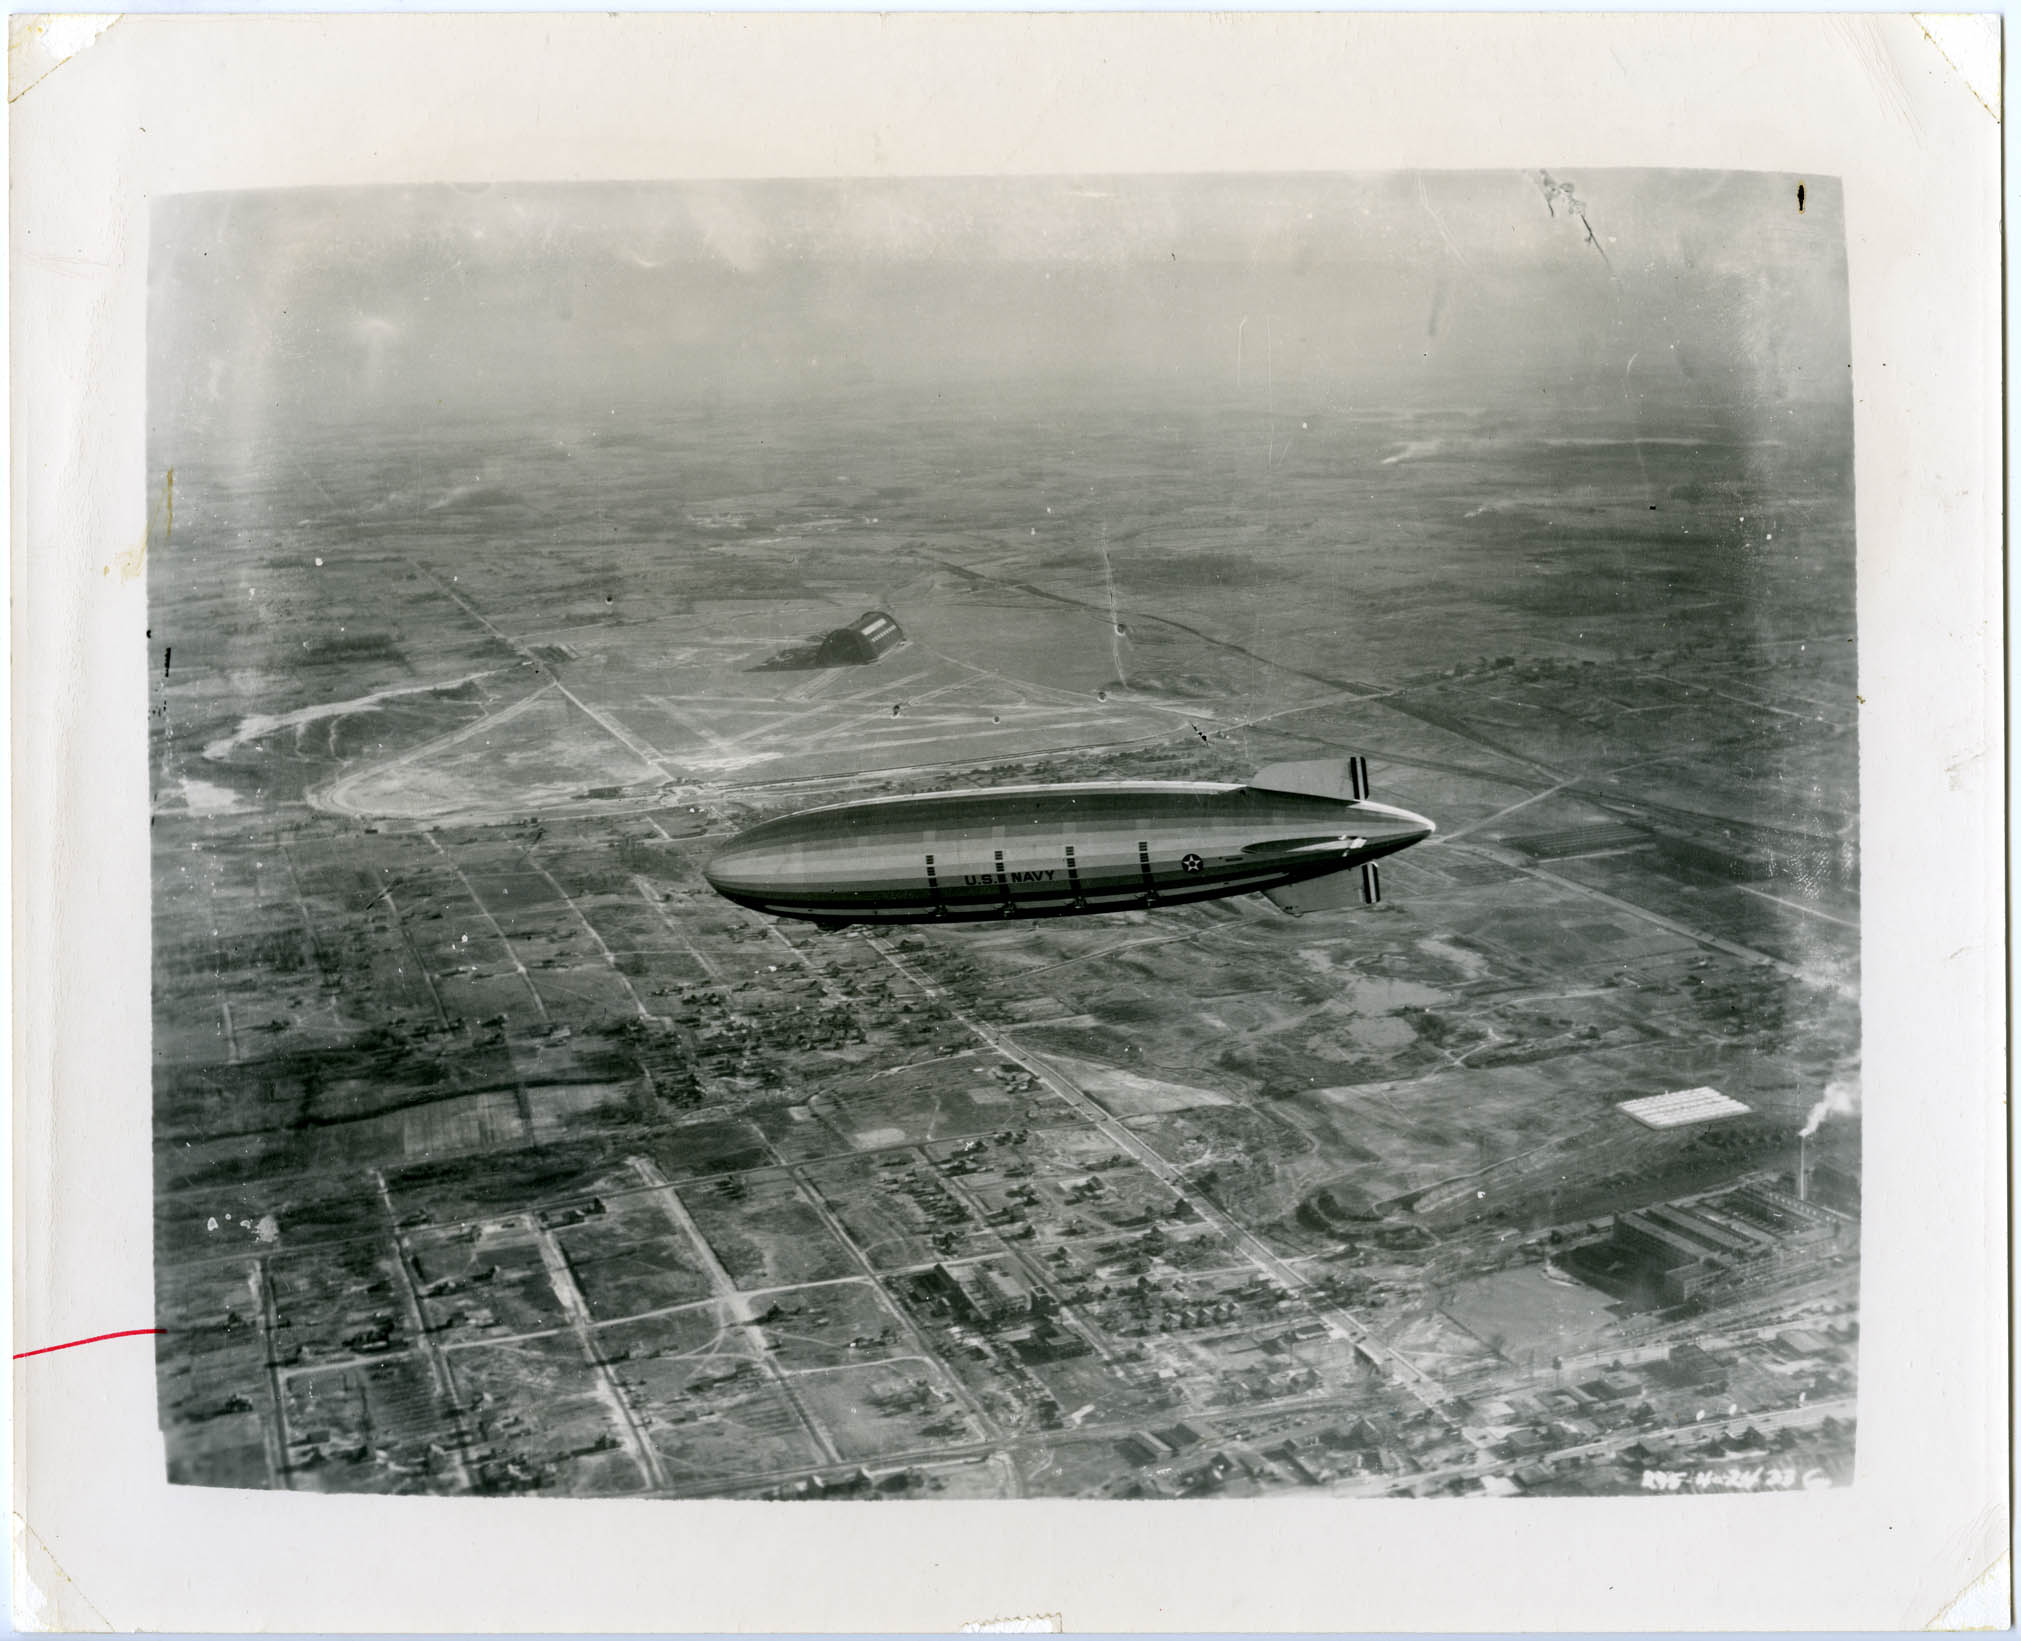 U.S.S. Macon flying above the Goodyear airship han